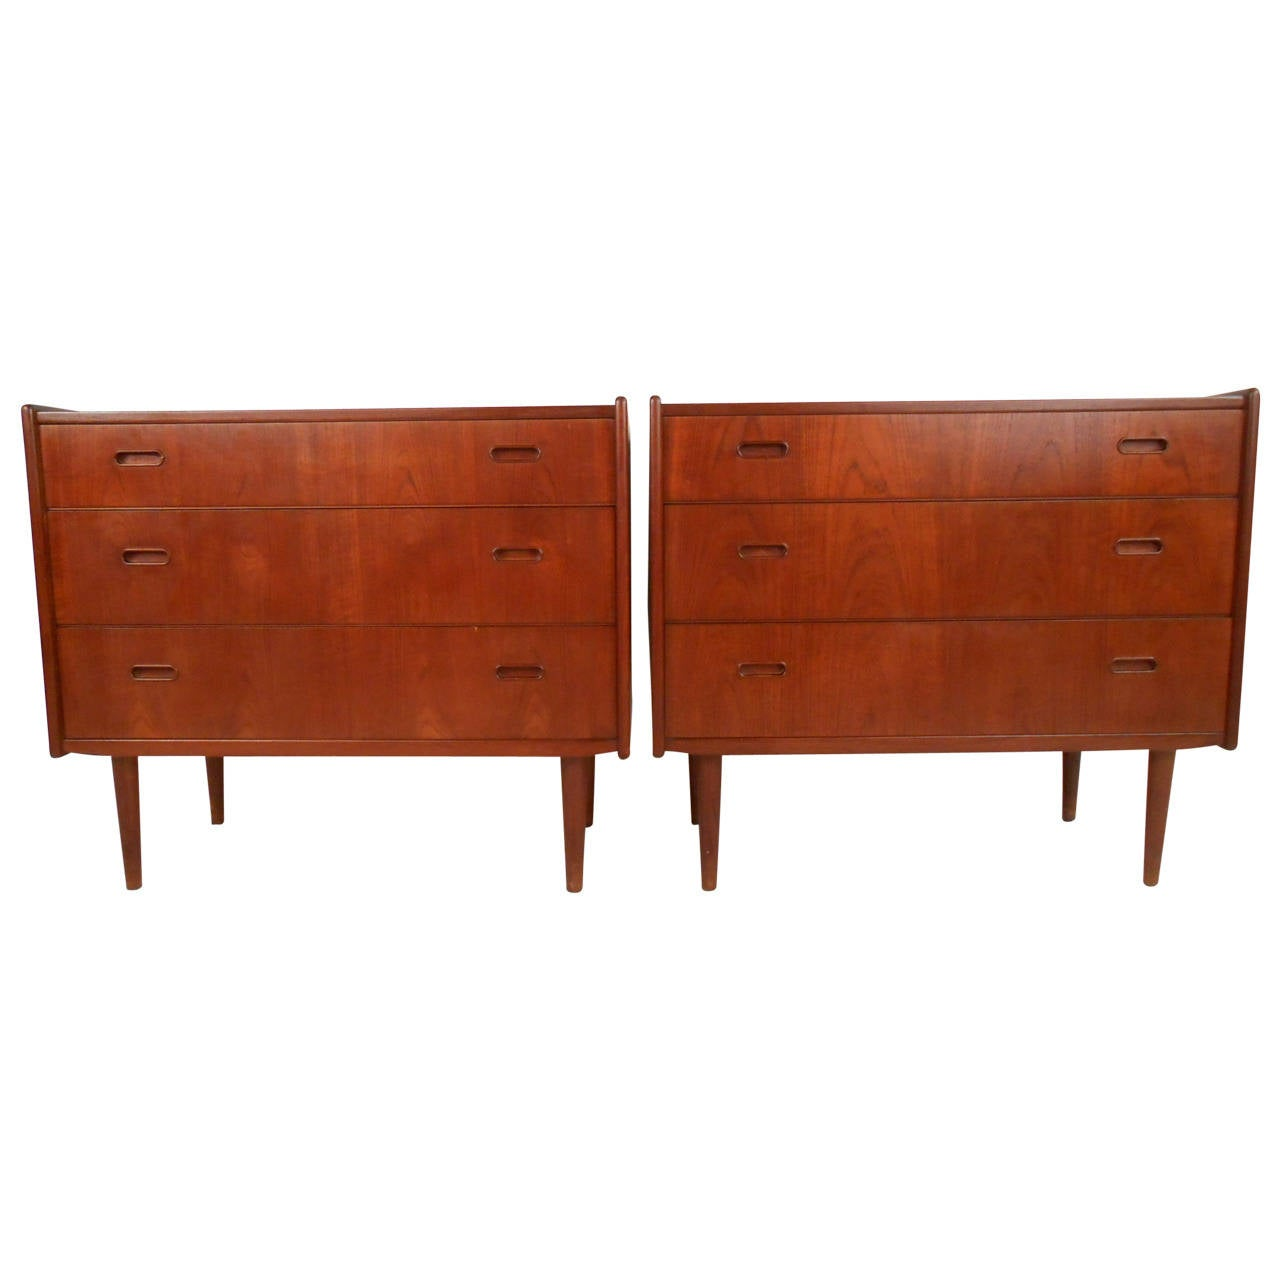 Pair Of Mid Century Modern Danish Teak Bedroom Dressers